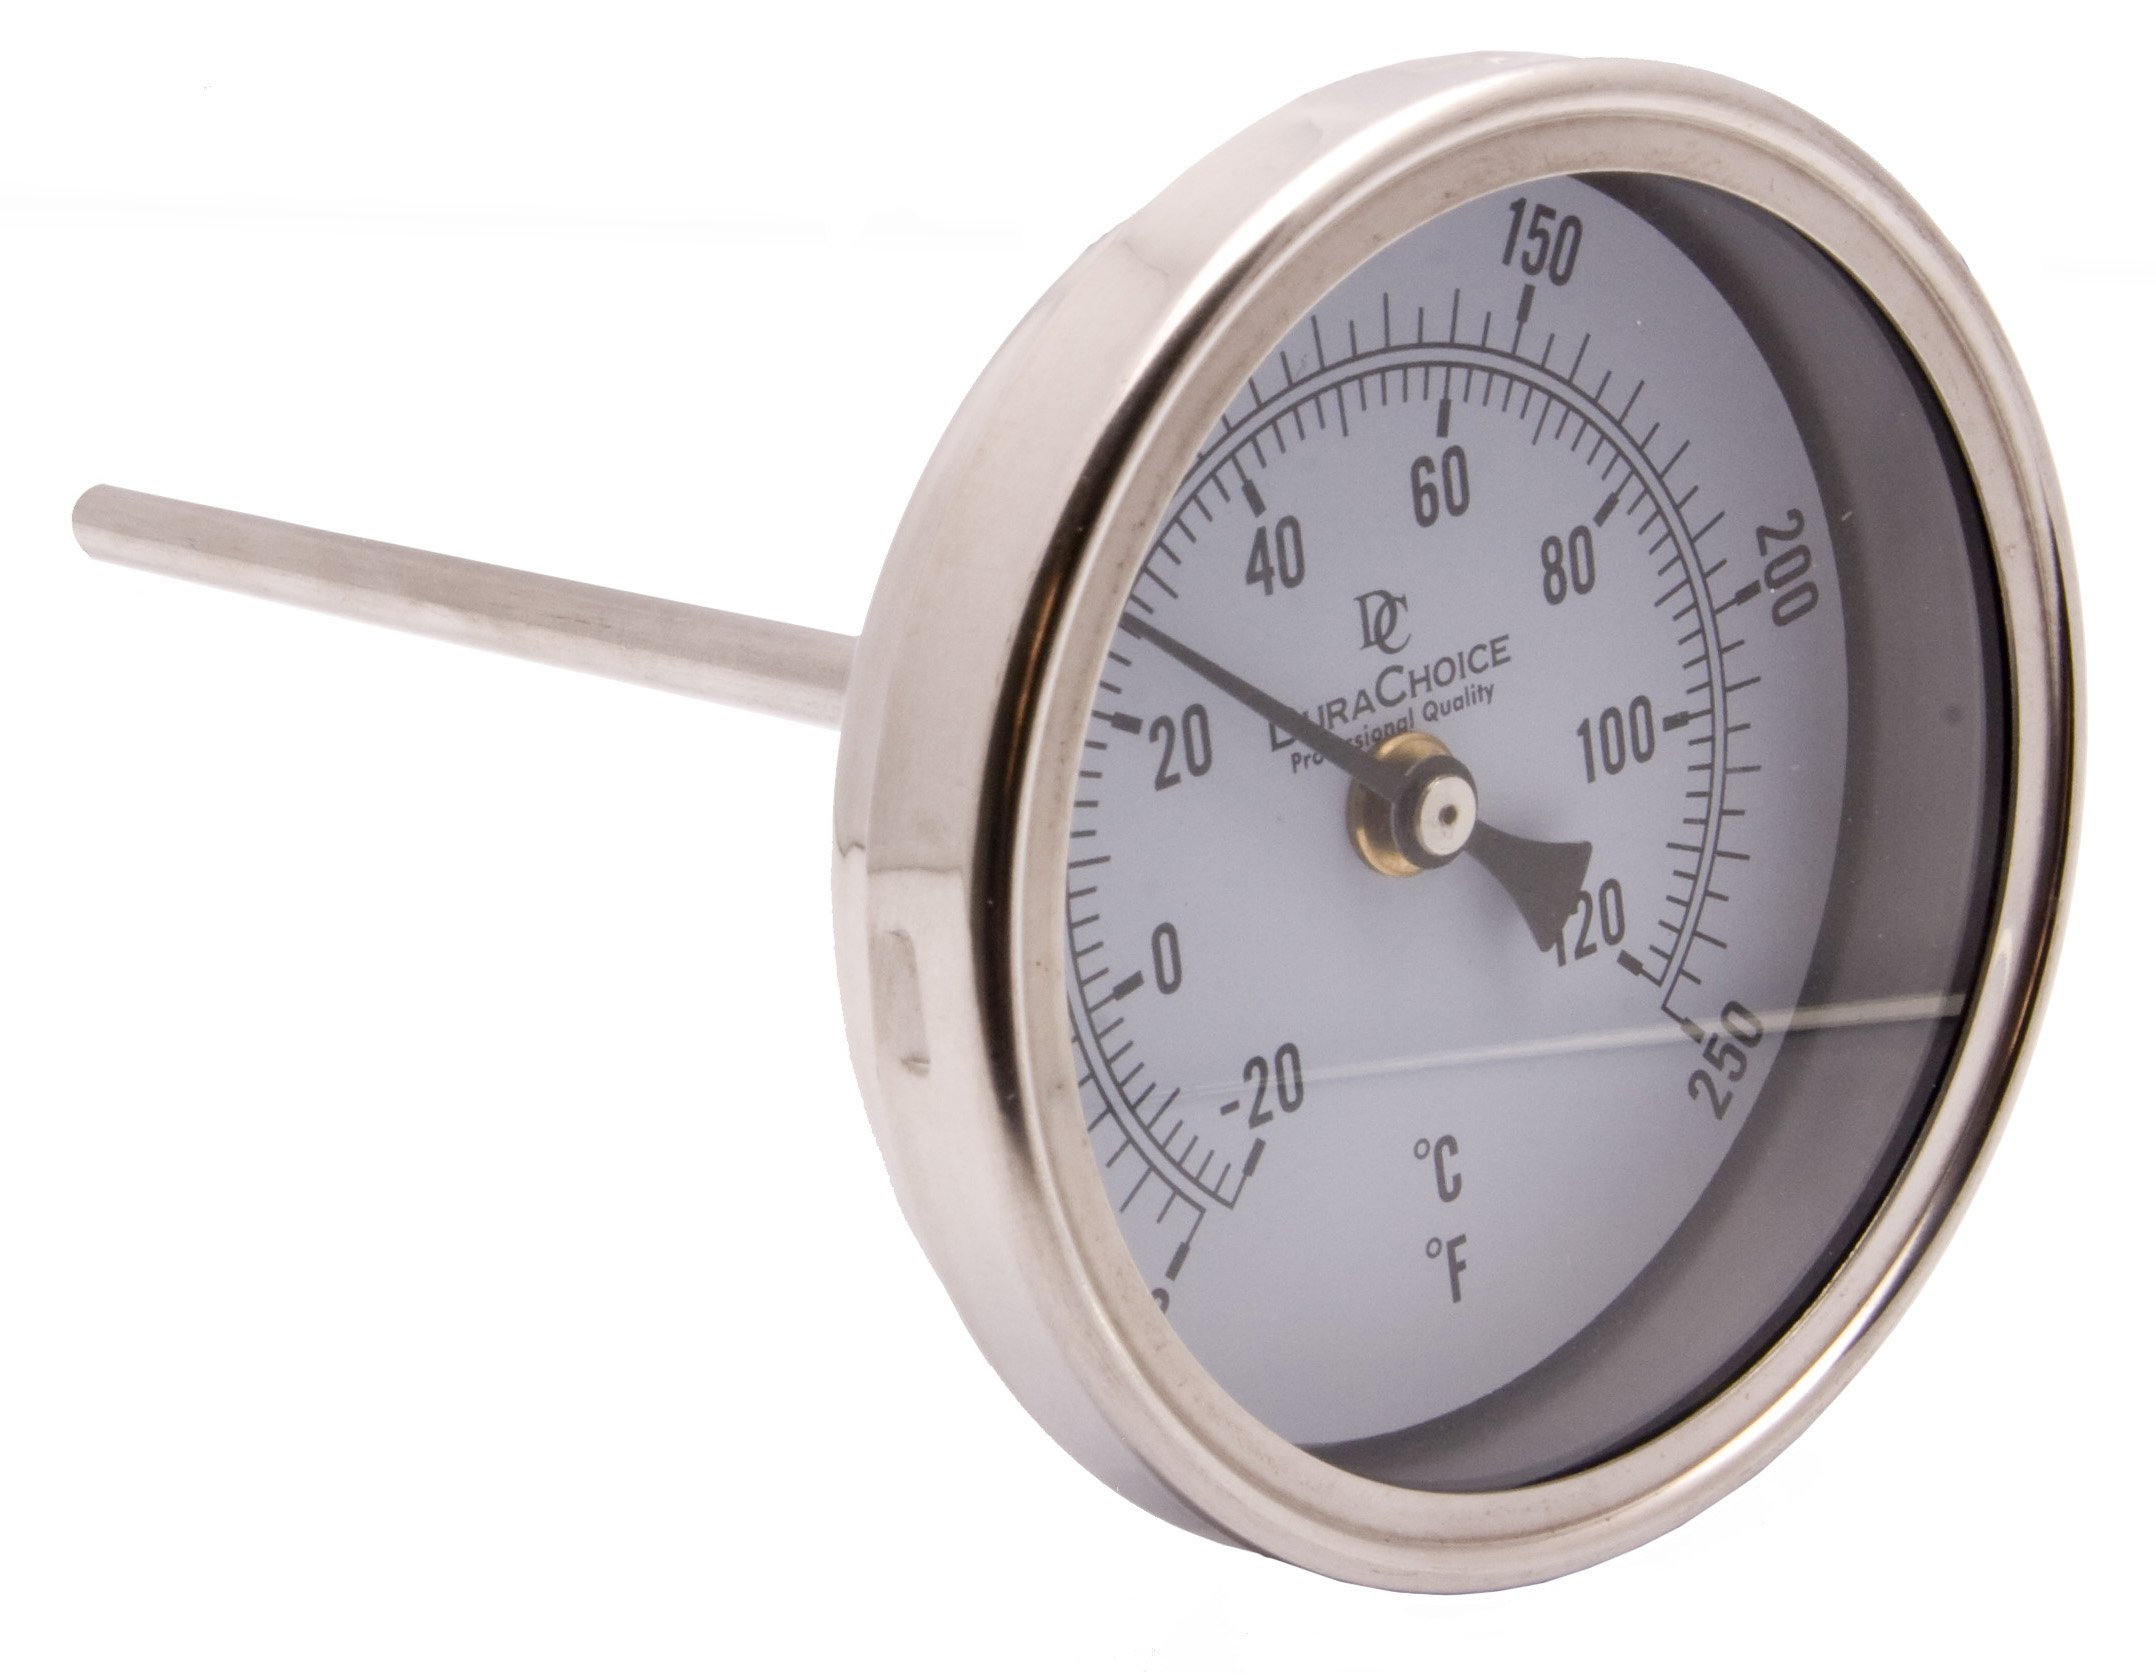 Industrial Bimetal Thermometer 3'' Face x 6'' Stem, 0-250 w/Calibration Dial